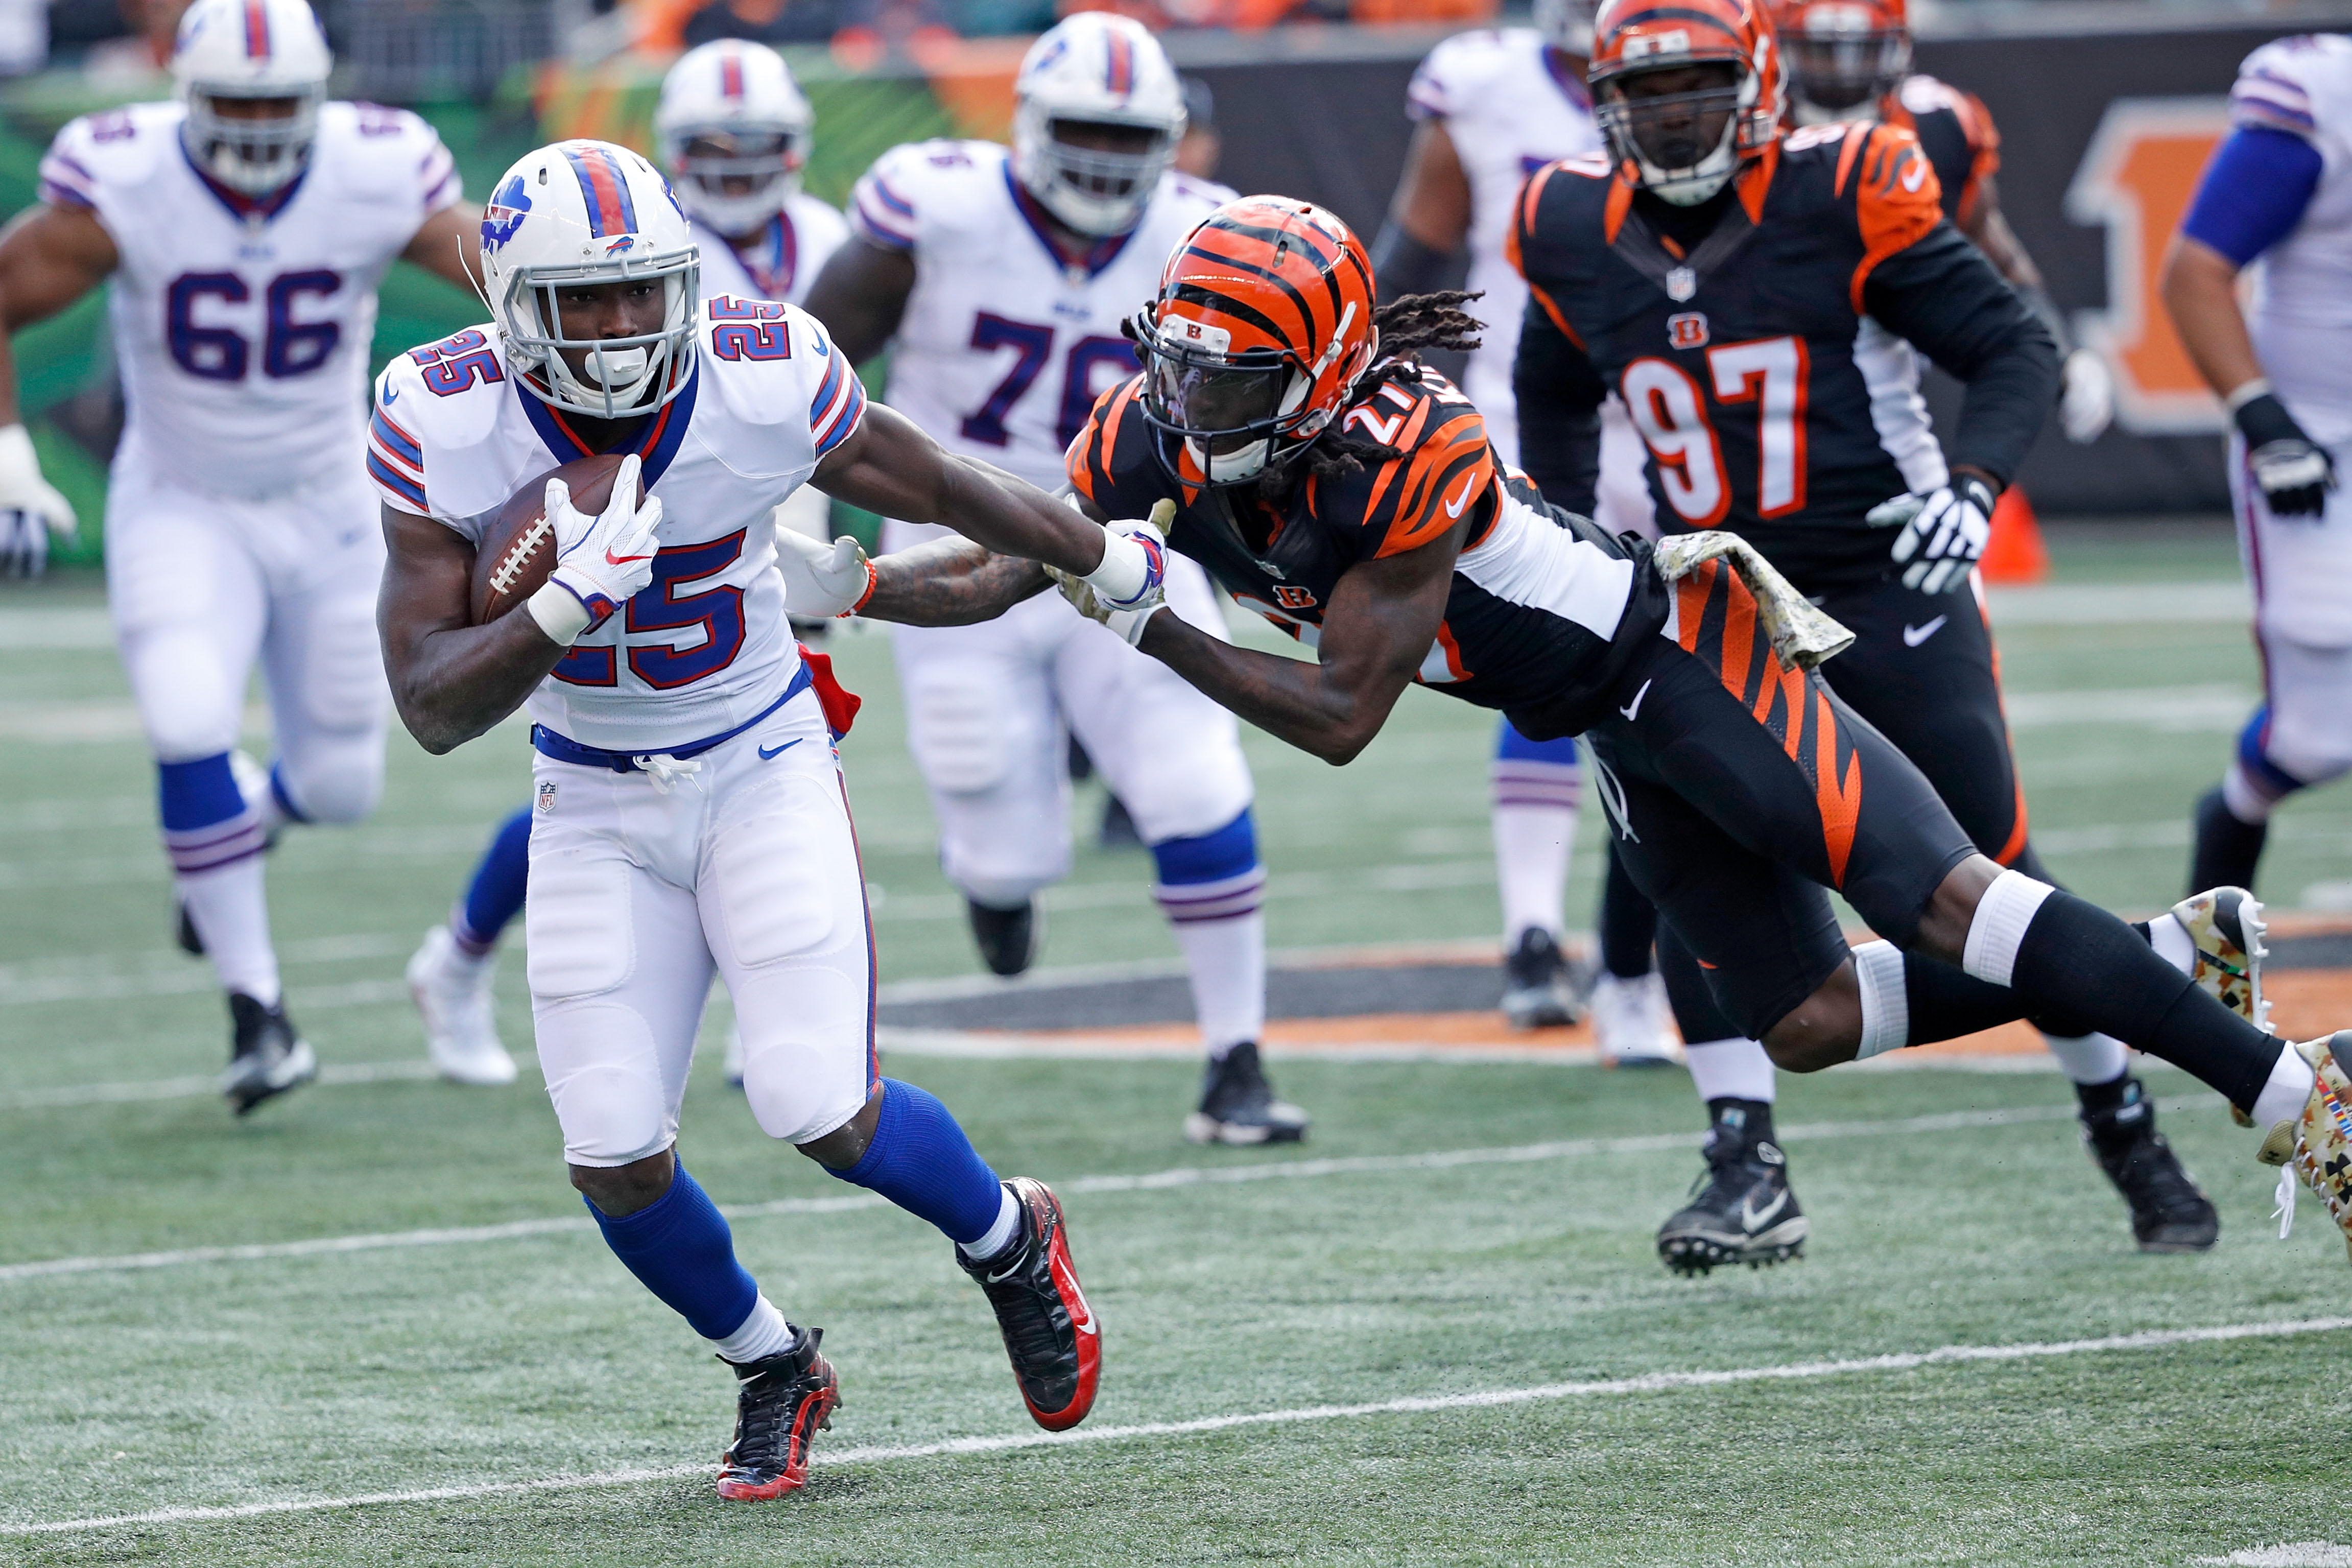 LeSean McCoy breaks a tackle by Dre Kirkpatrick of the Cincinnati Bengals during the second quarter. (Getty Images)